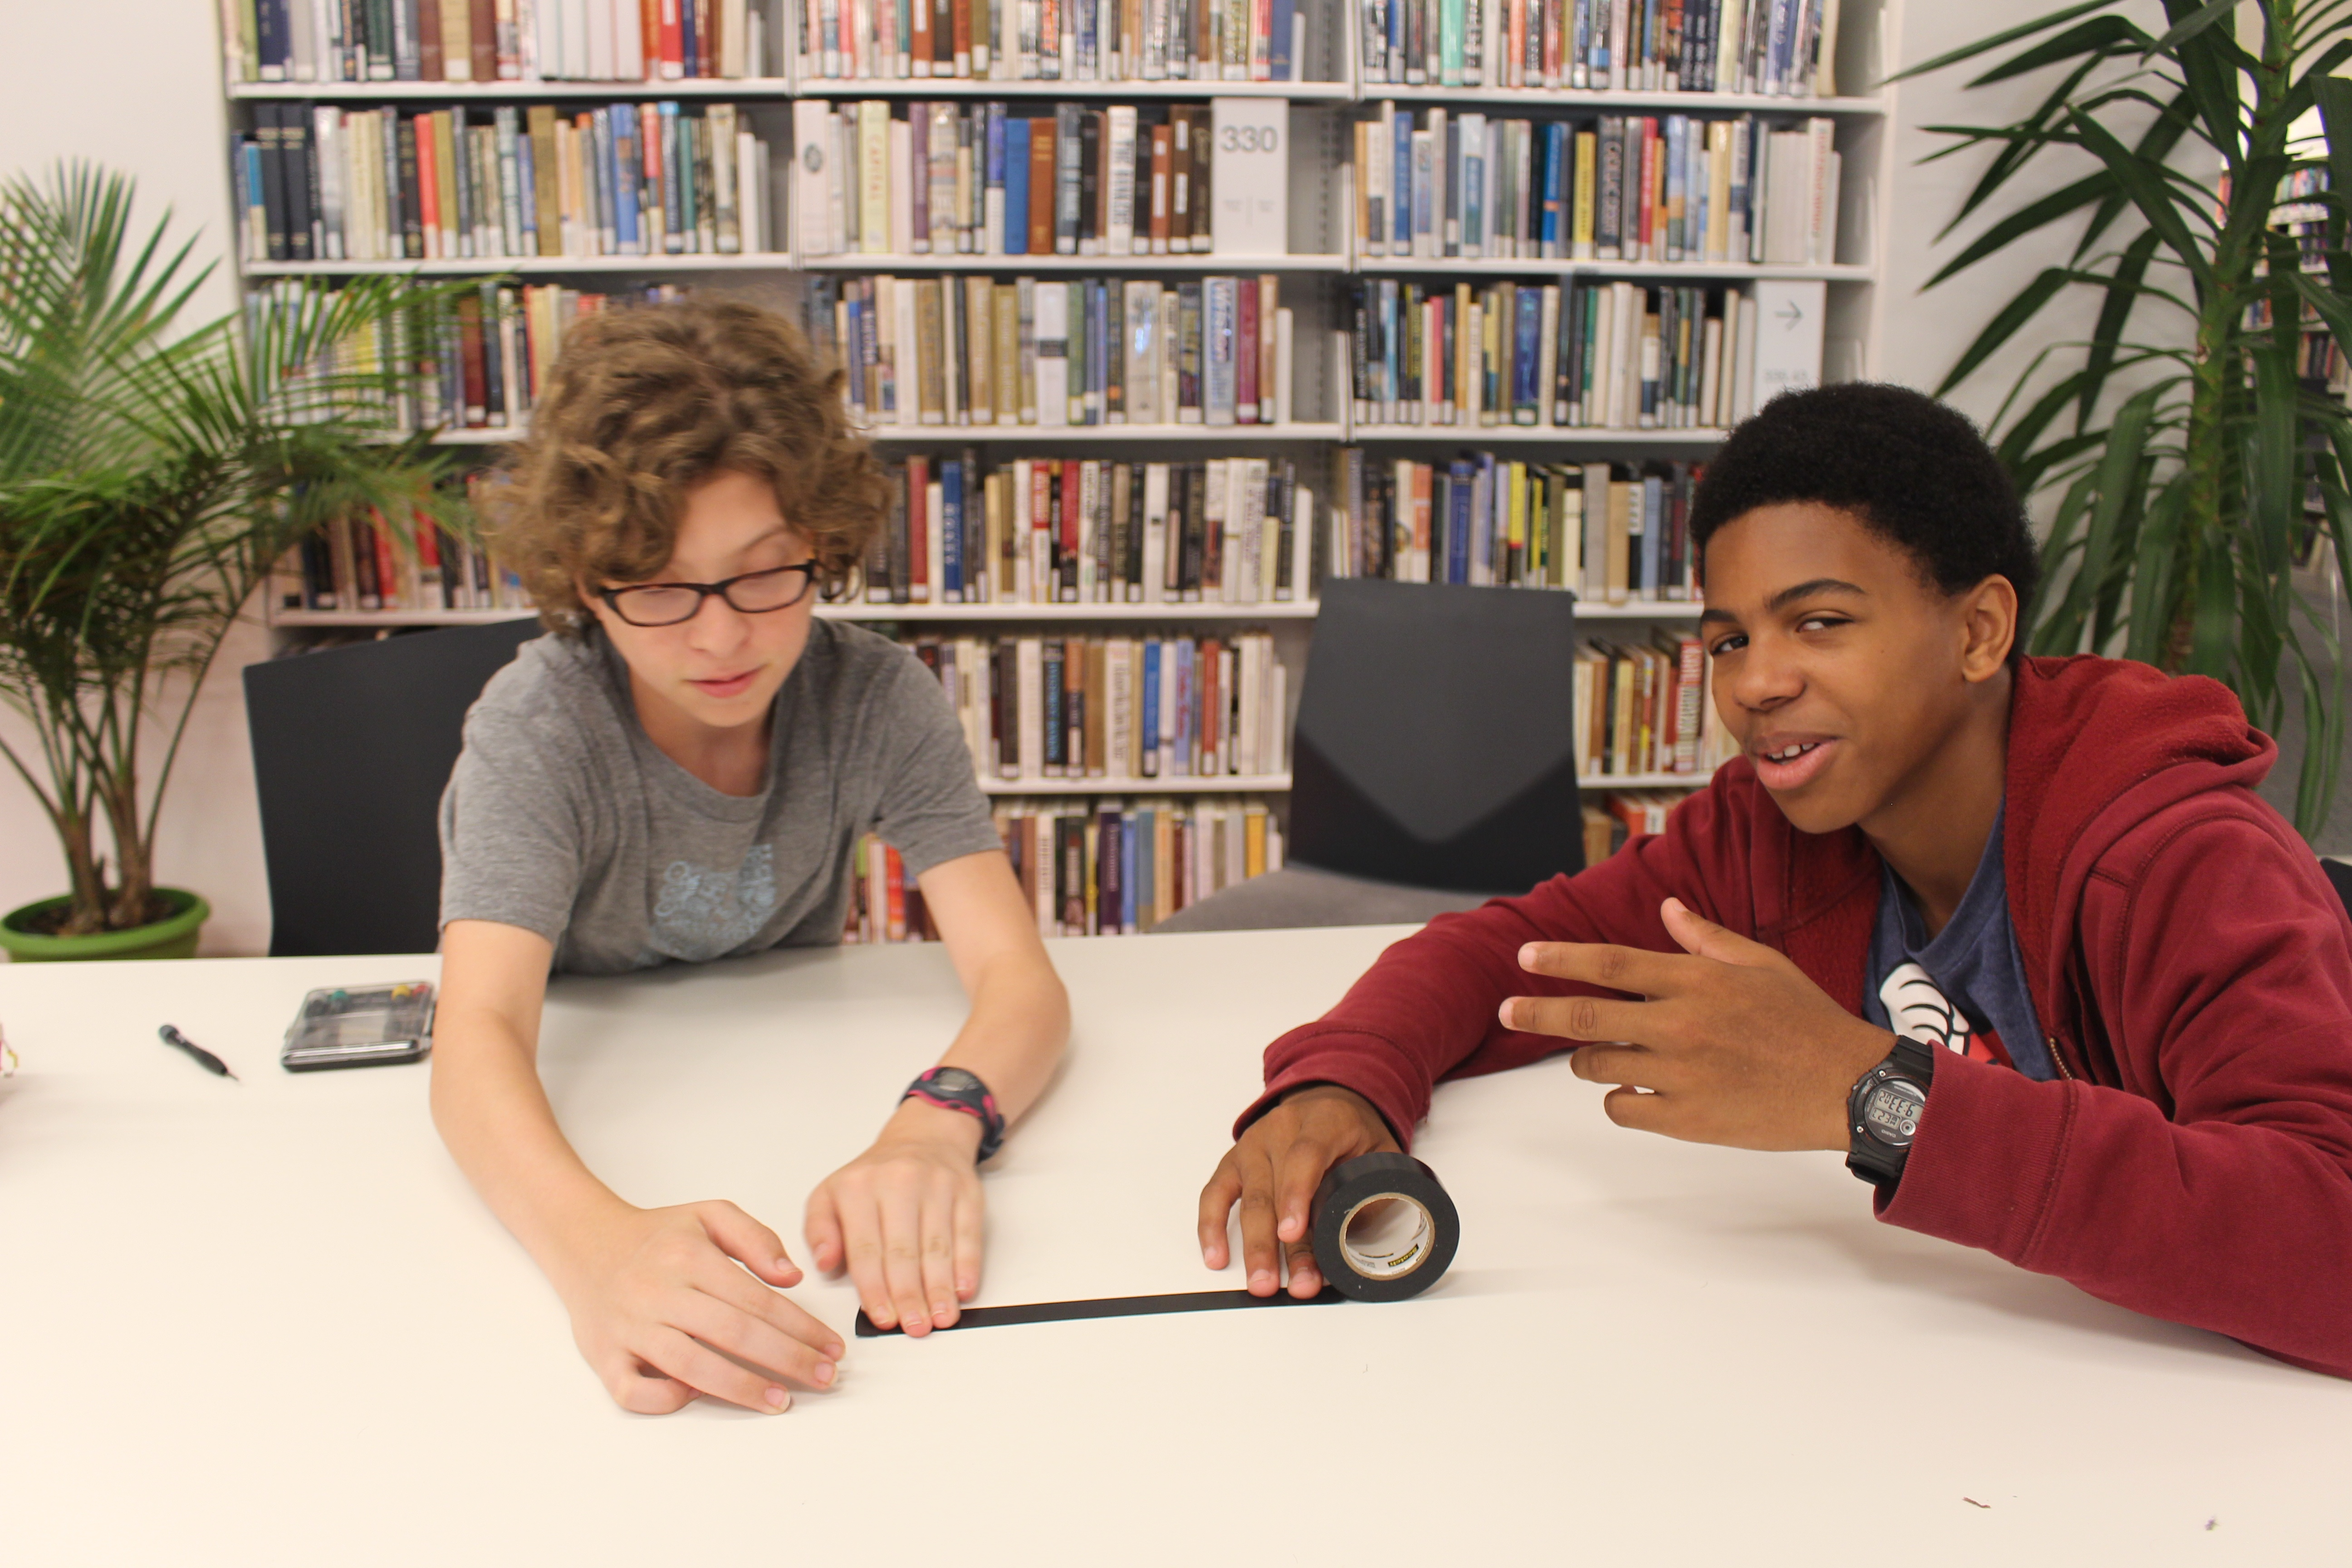 Coryell and Tysean's robot will be making its acting debut later this week in Theater + Electronics class